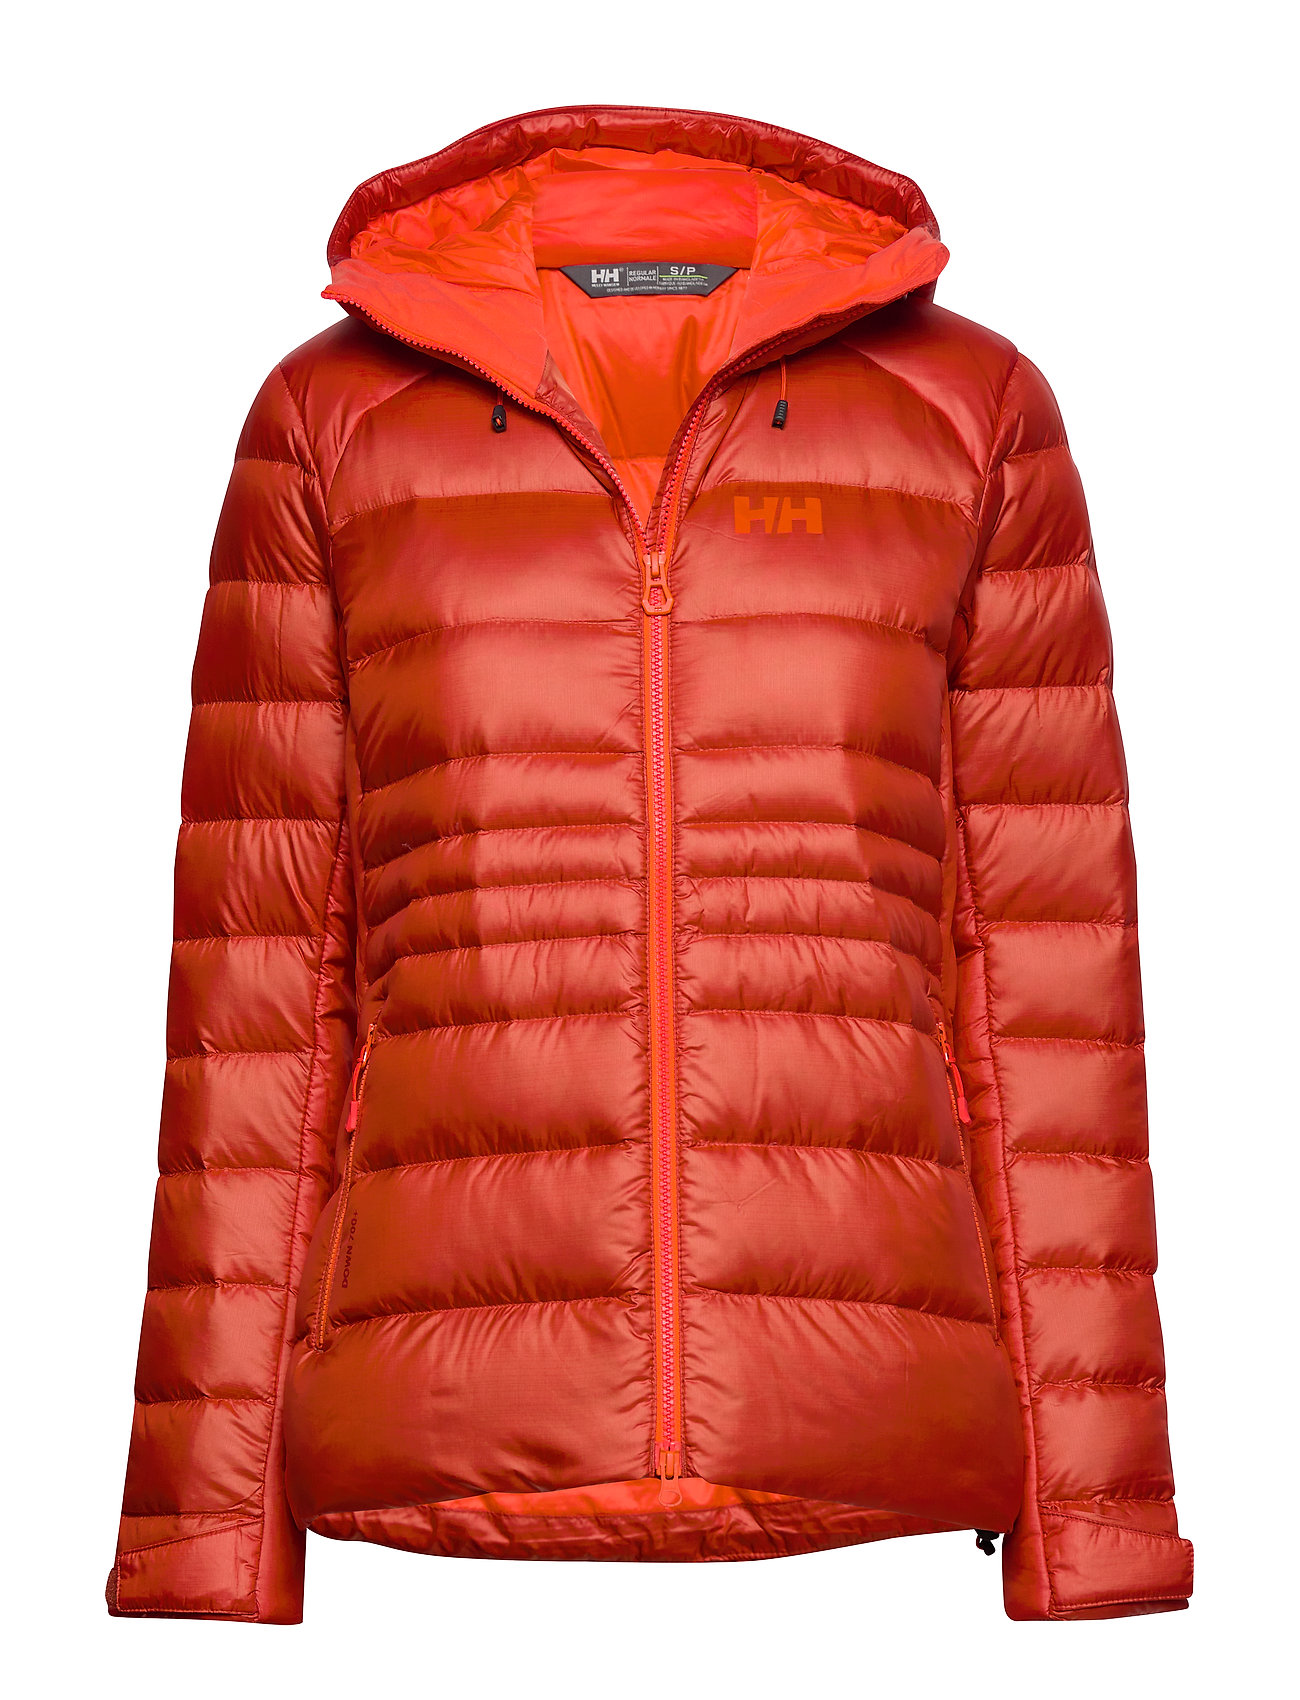 Helly Hansen W VANIR ICEFALL DOWN JACKET - RED BRICK